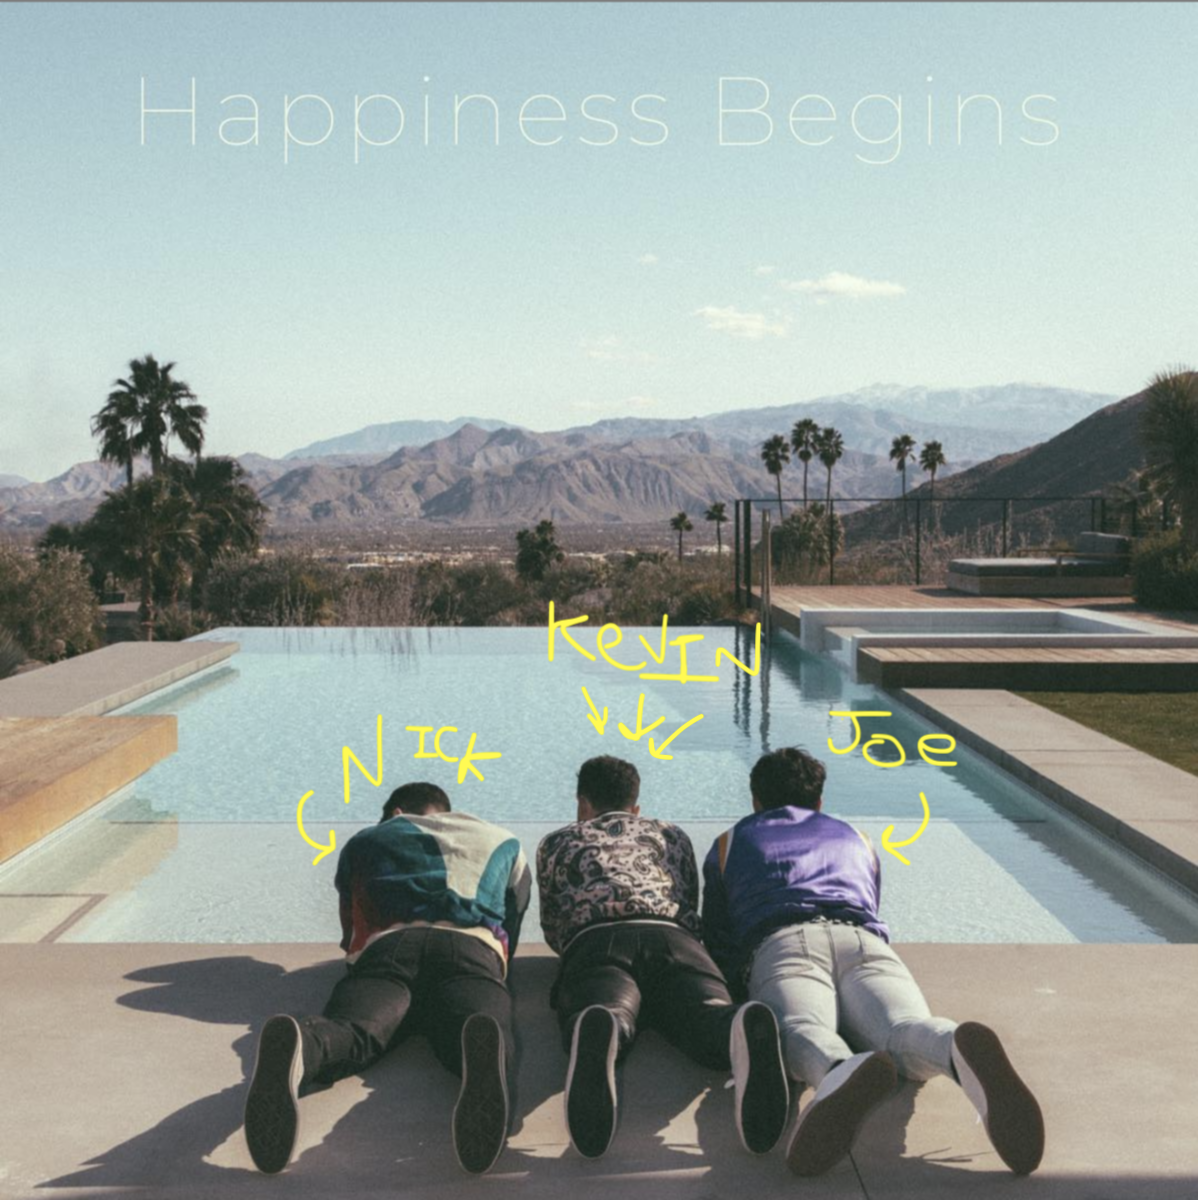 The Jonas Brothers Announced Their New Album And Kevin Jonas Is Finally In The Center Of The Photo